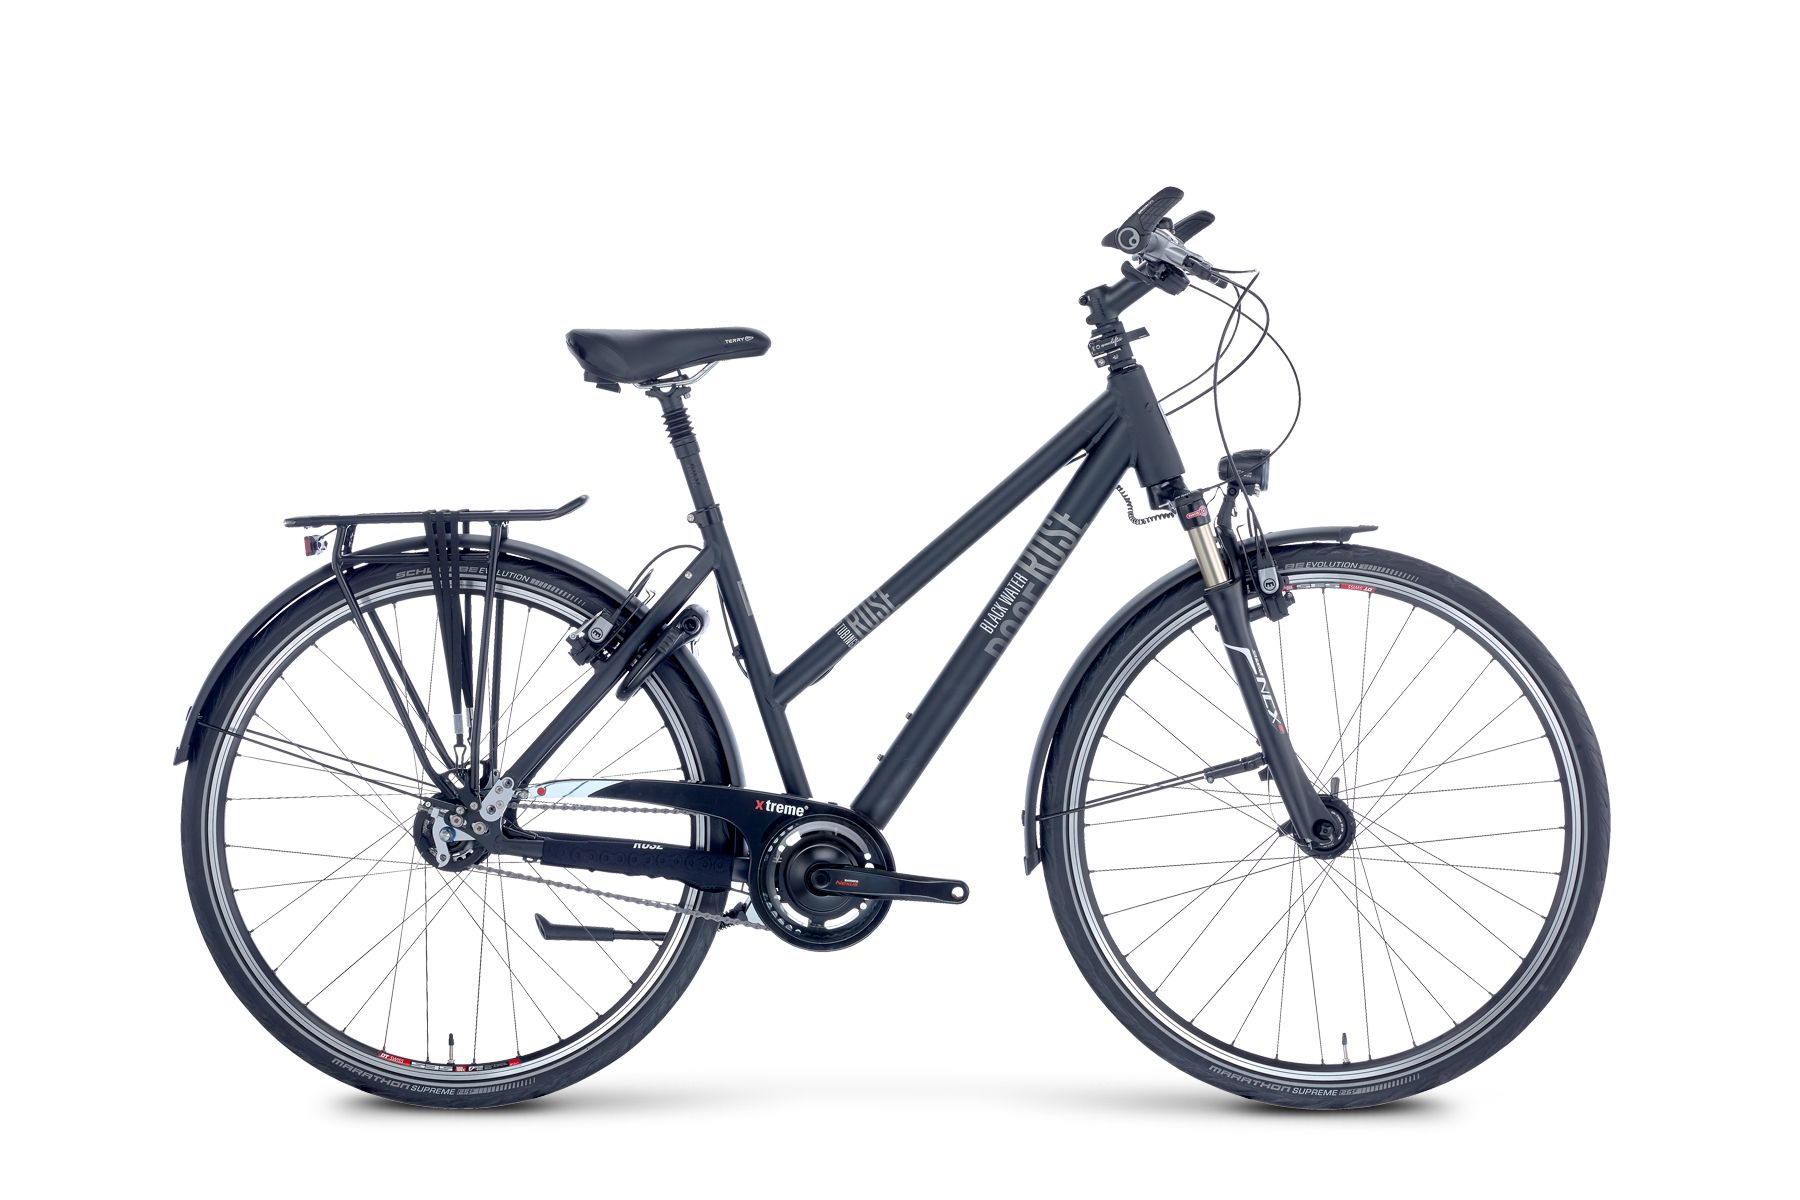 BLACK WATER 1 UNISEX showroom bike size: 19""